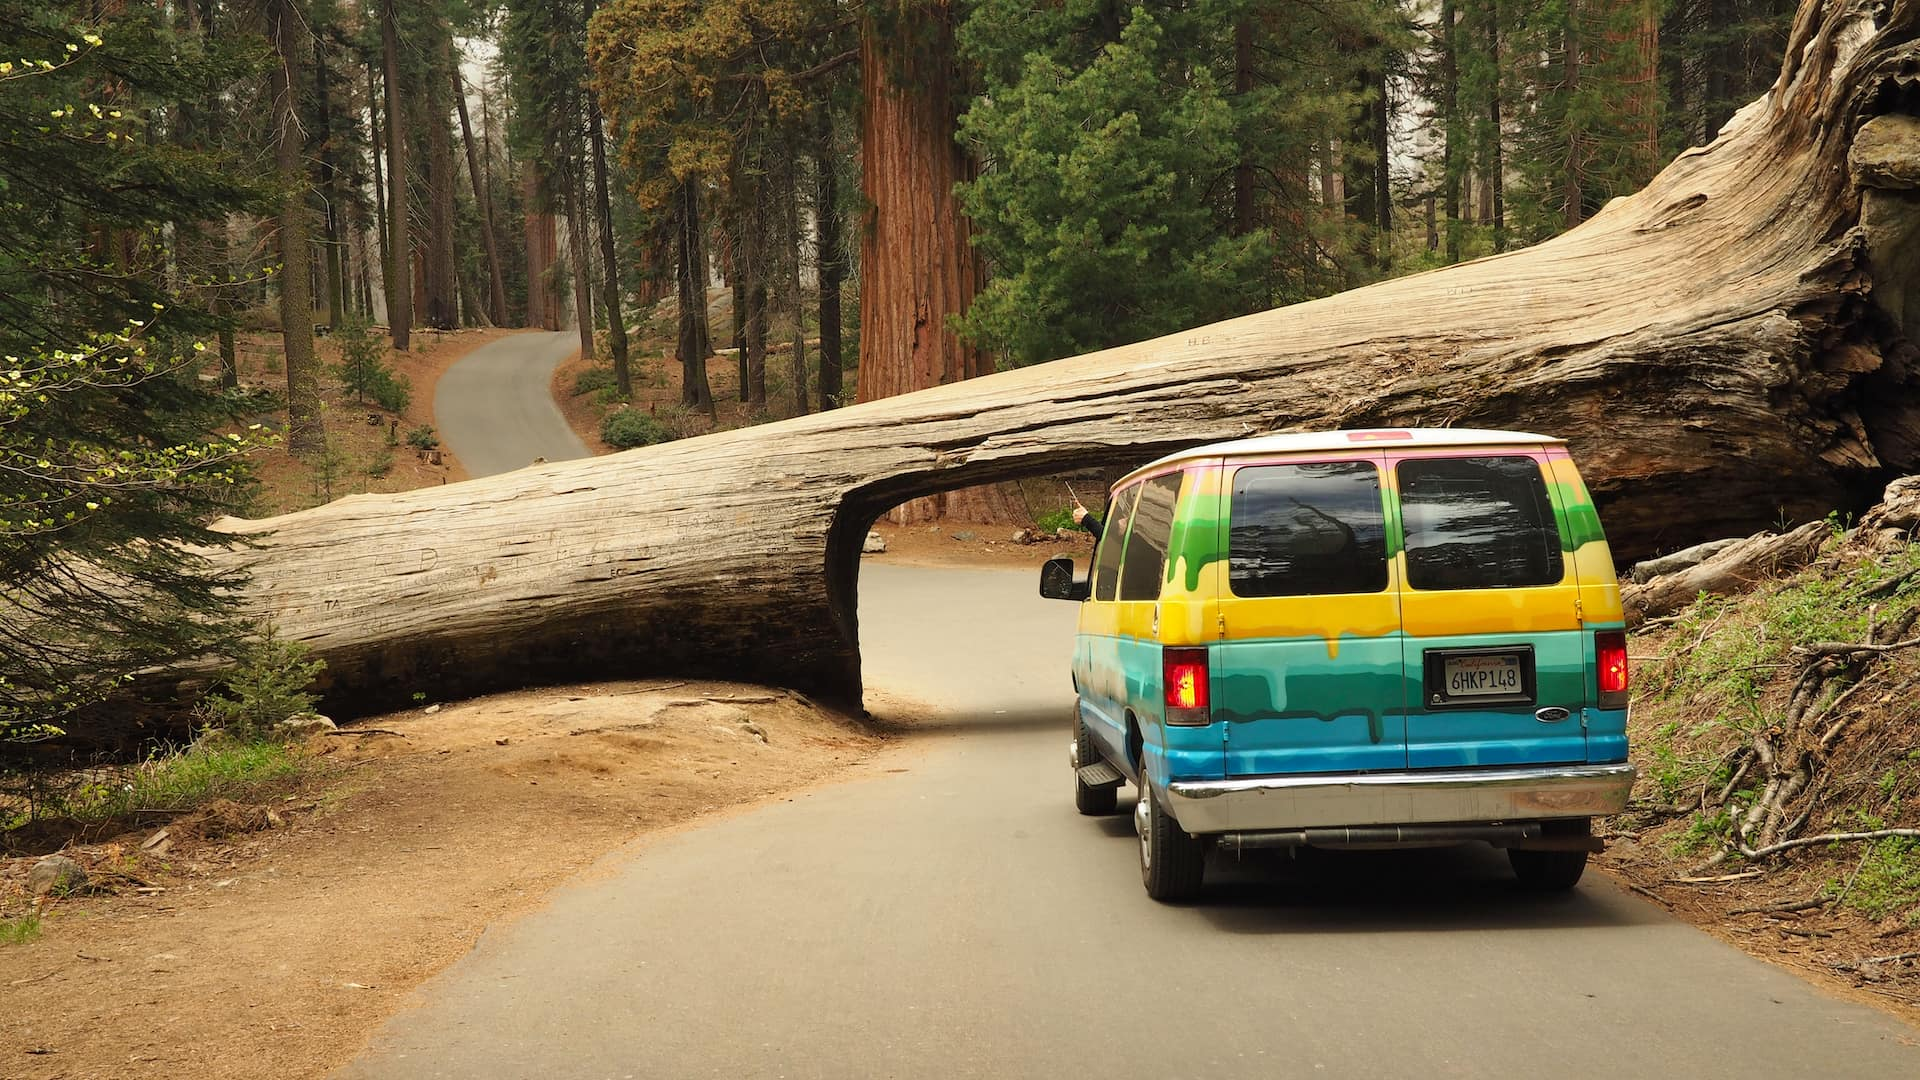 A multi-coloured van is parked in front of a fallen tree across the road, with a tunnel carved through its trunk